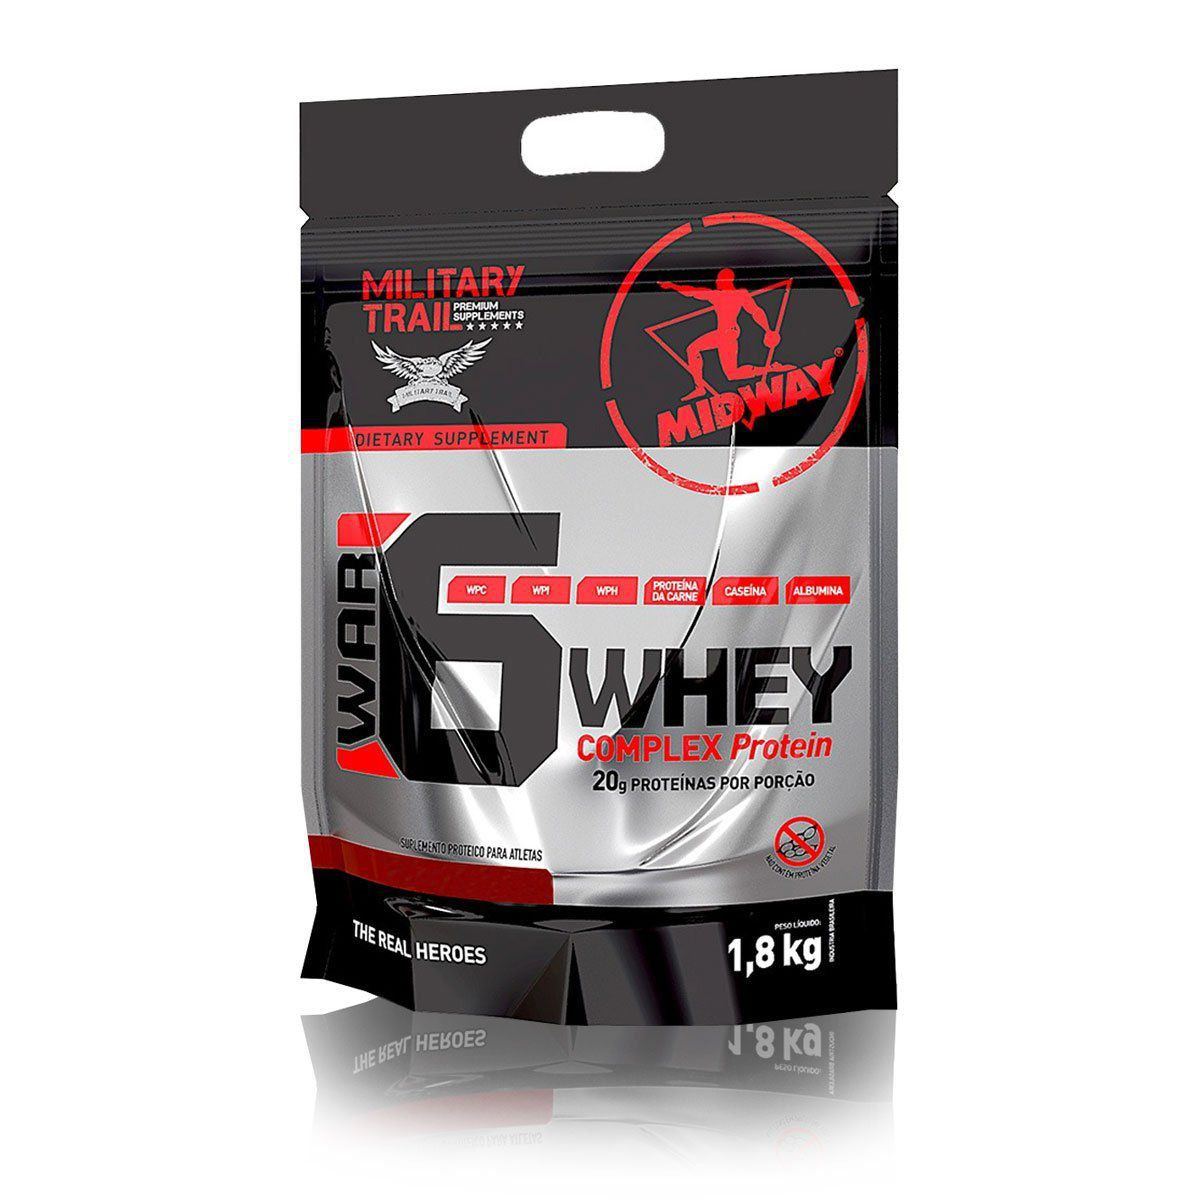 War 6 Protein Complex 1,8 kg Military Trail - Midway Labs